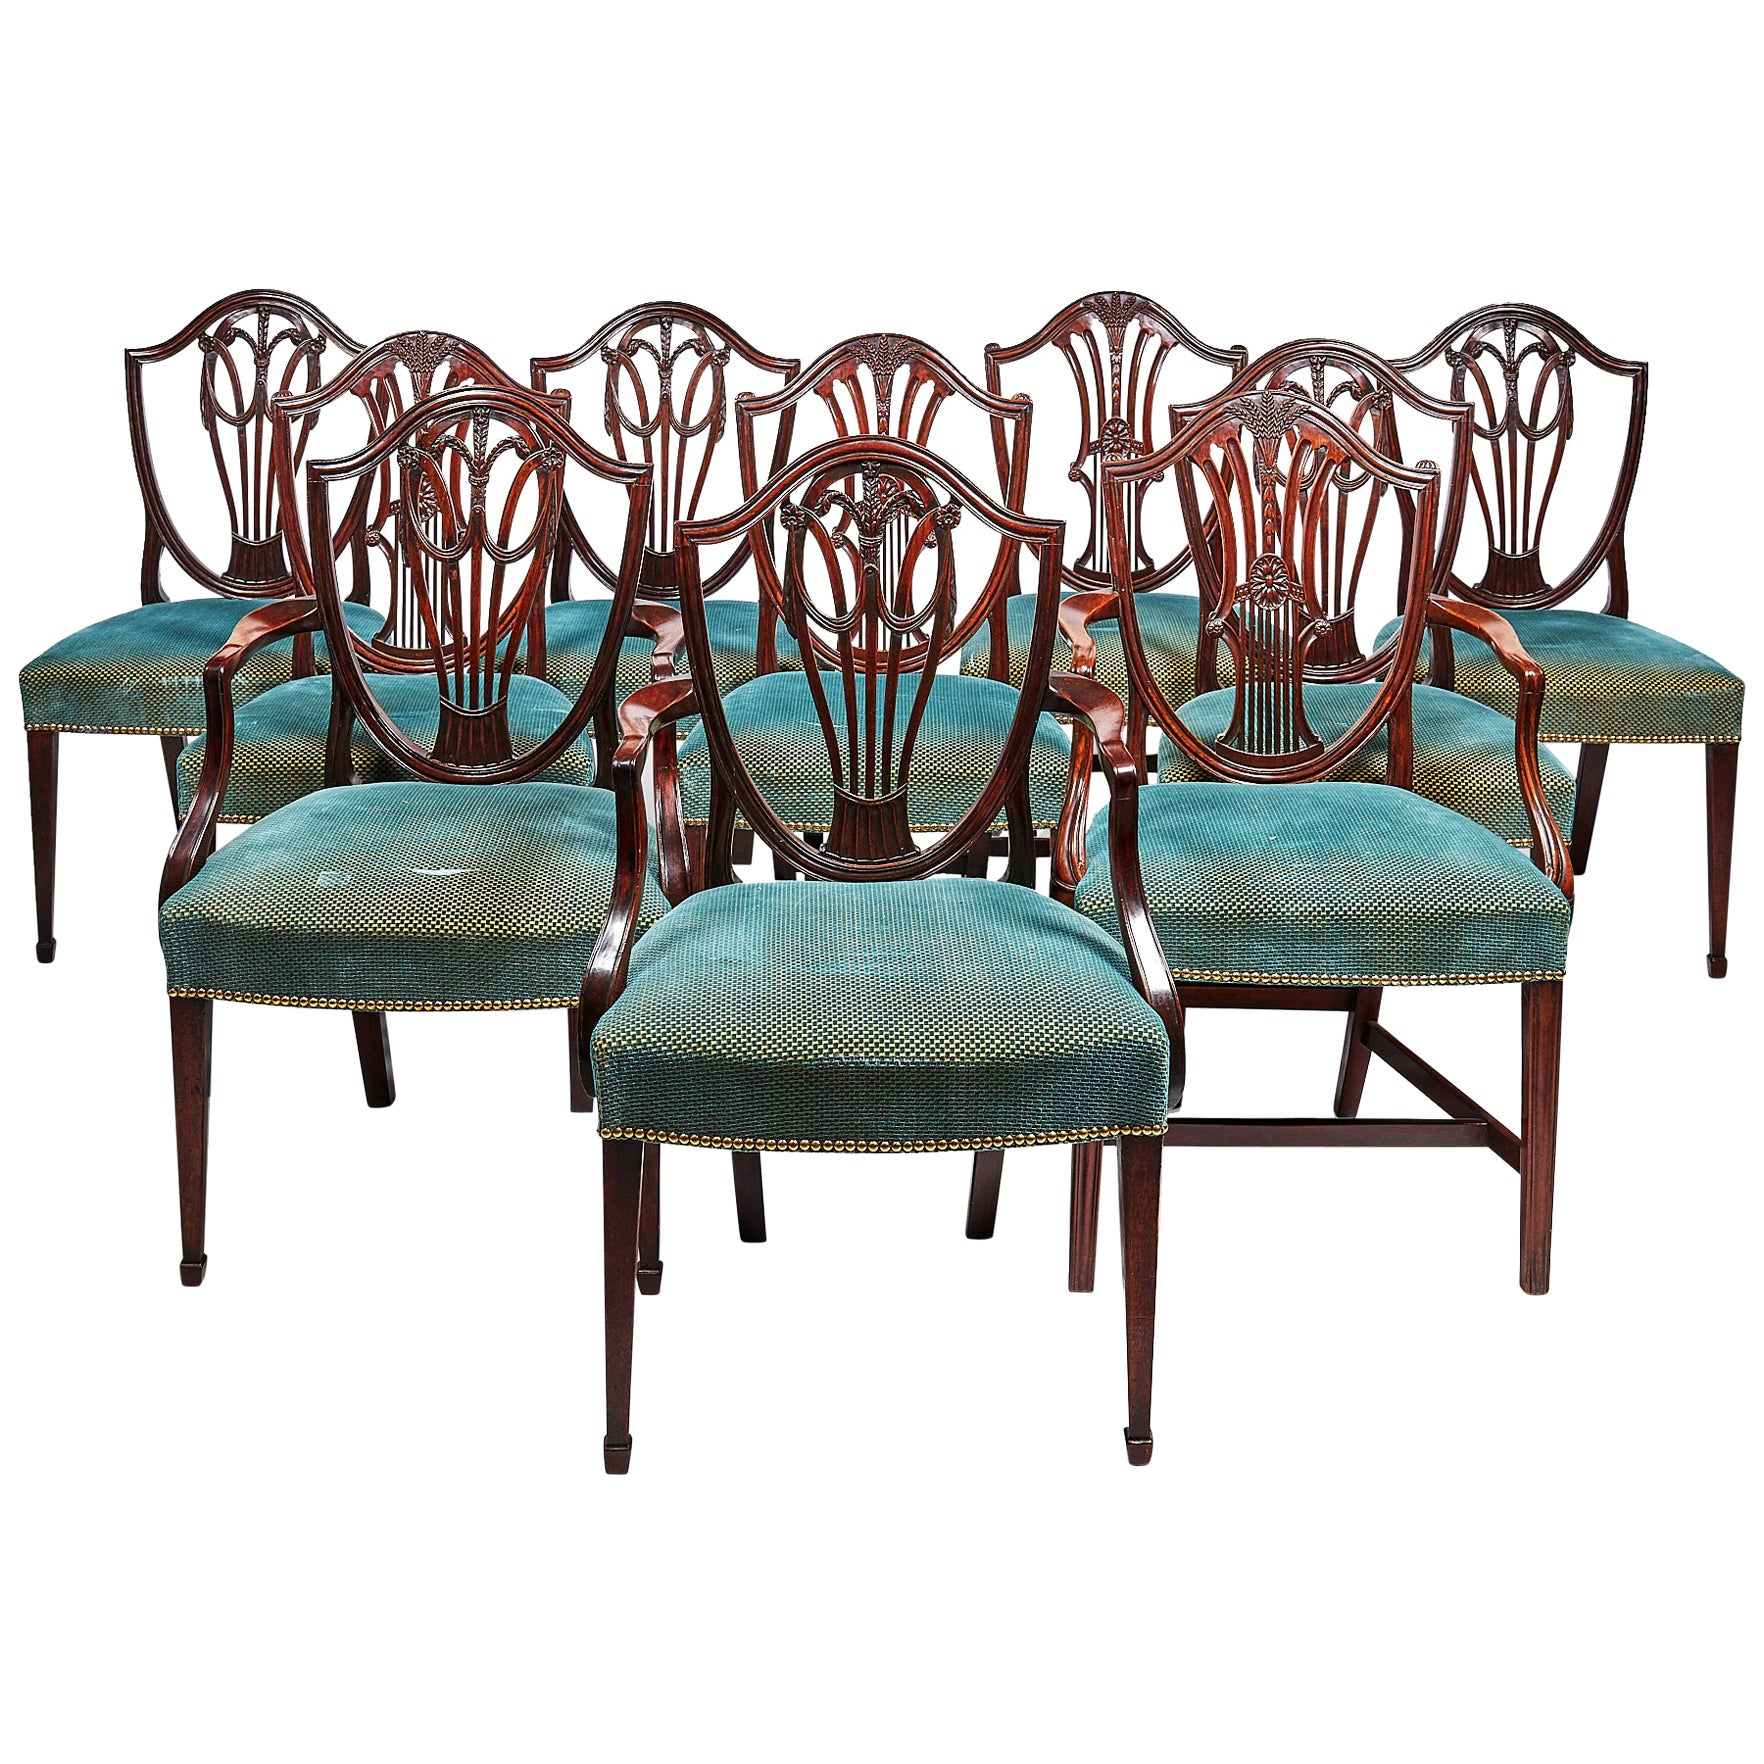 Ten George III Mahogany Dining Chairs in the Hepplewhite Style